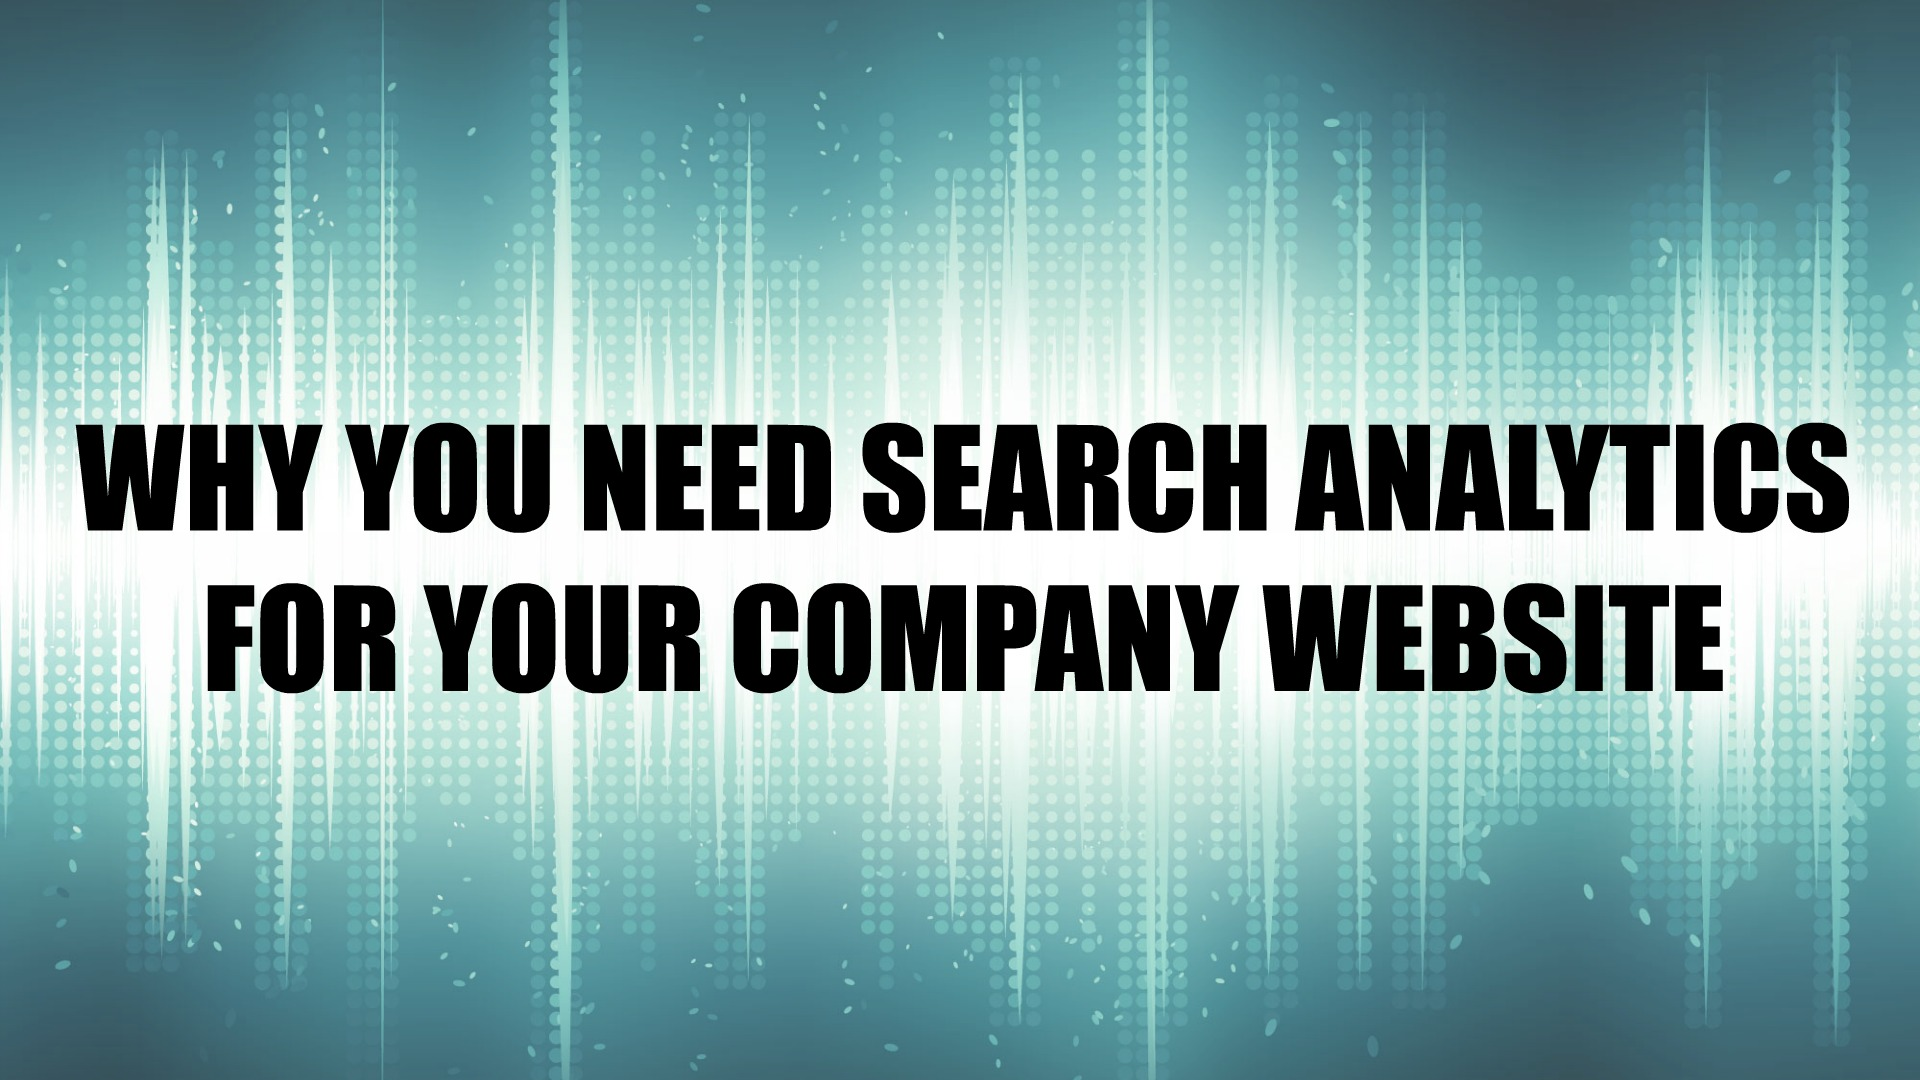 Why You Need Search Analytics for Your Company Website